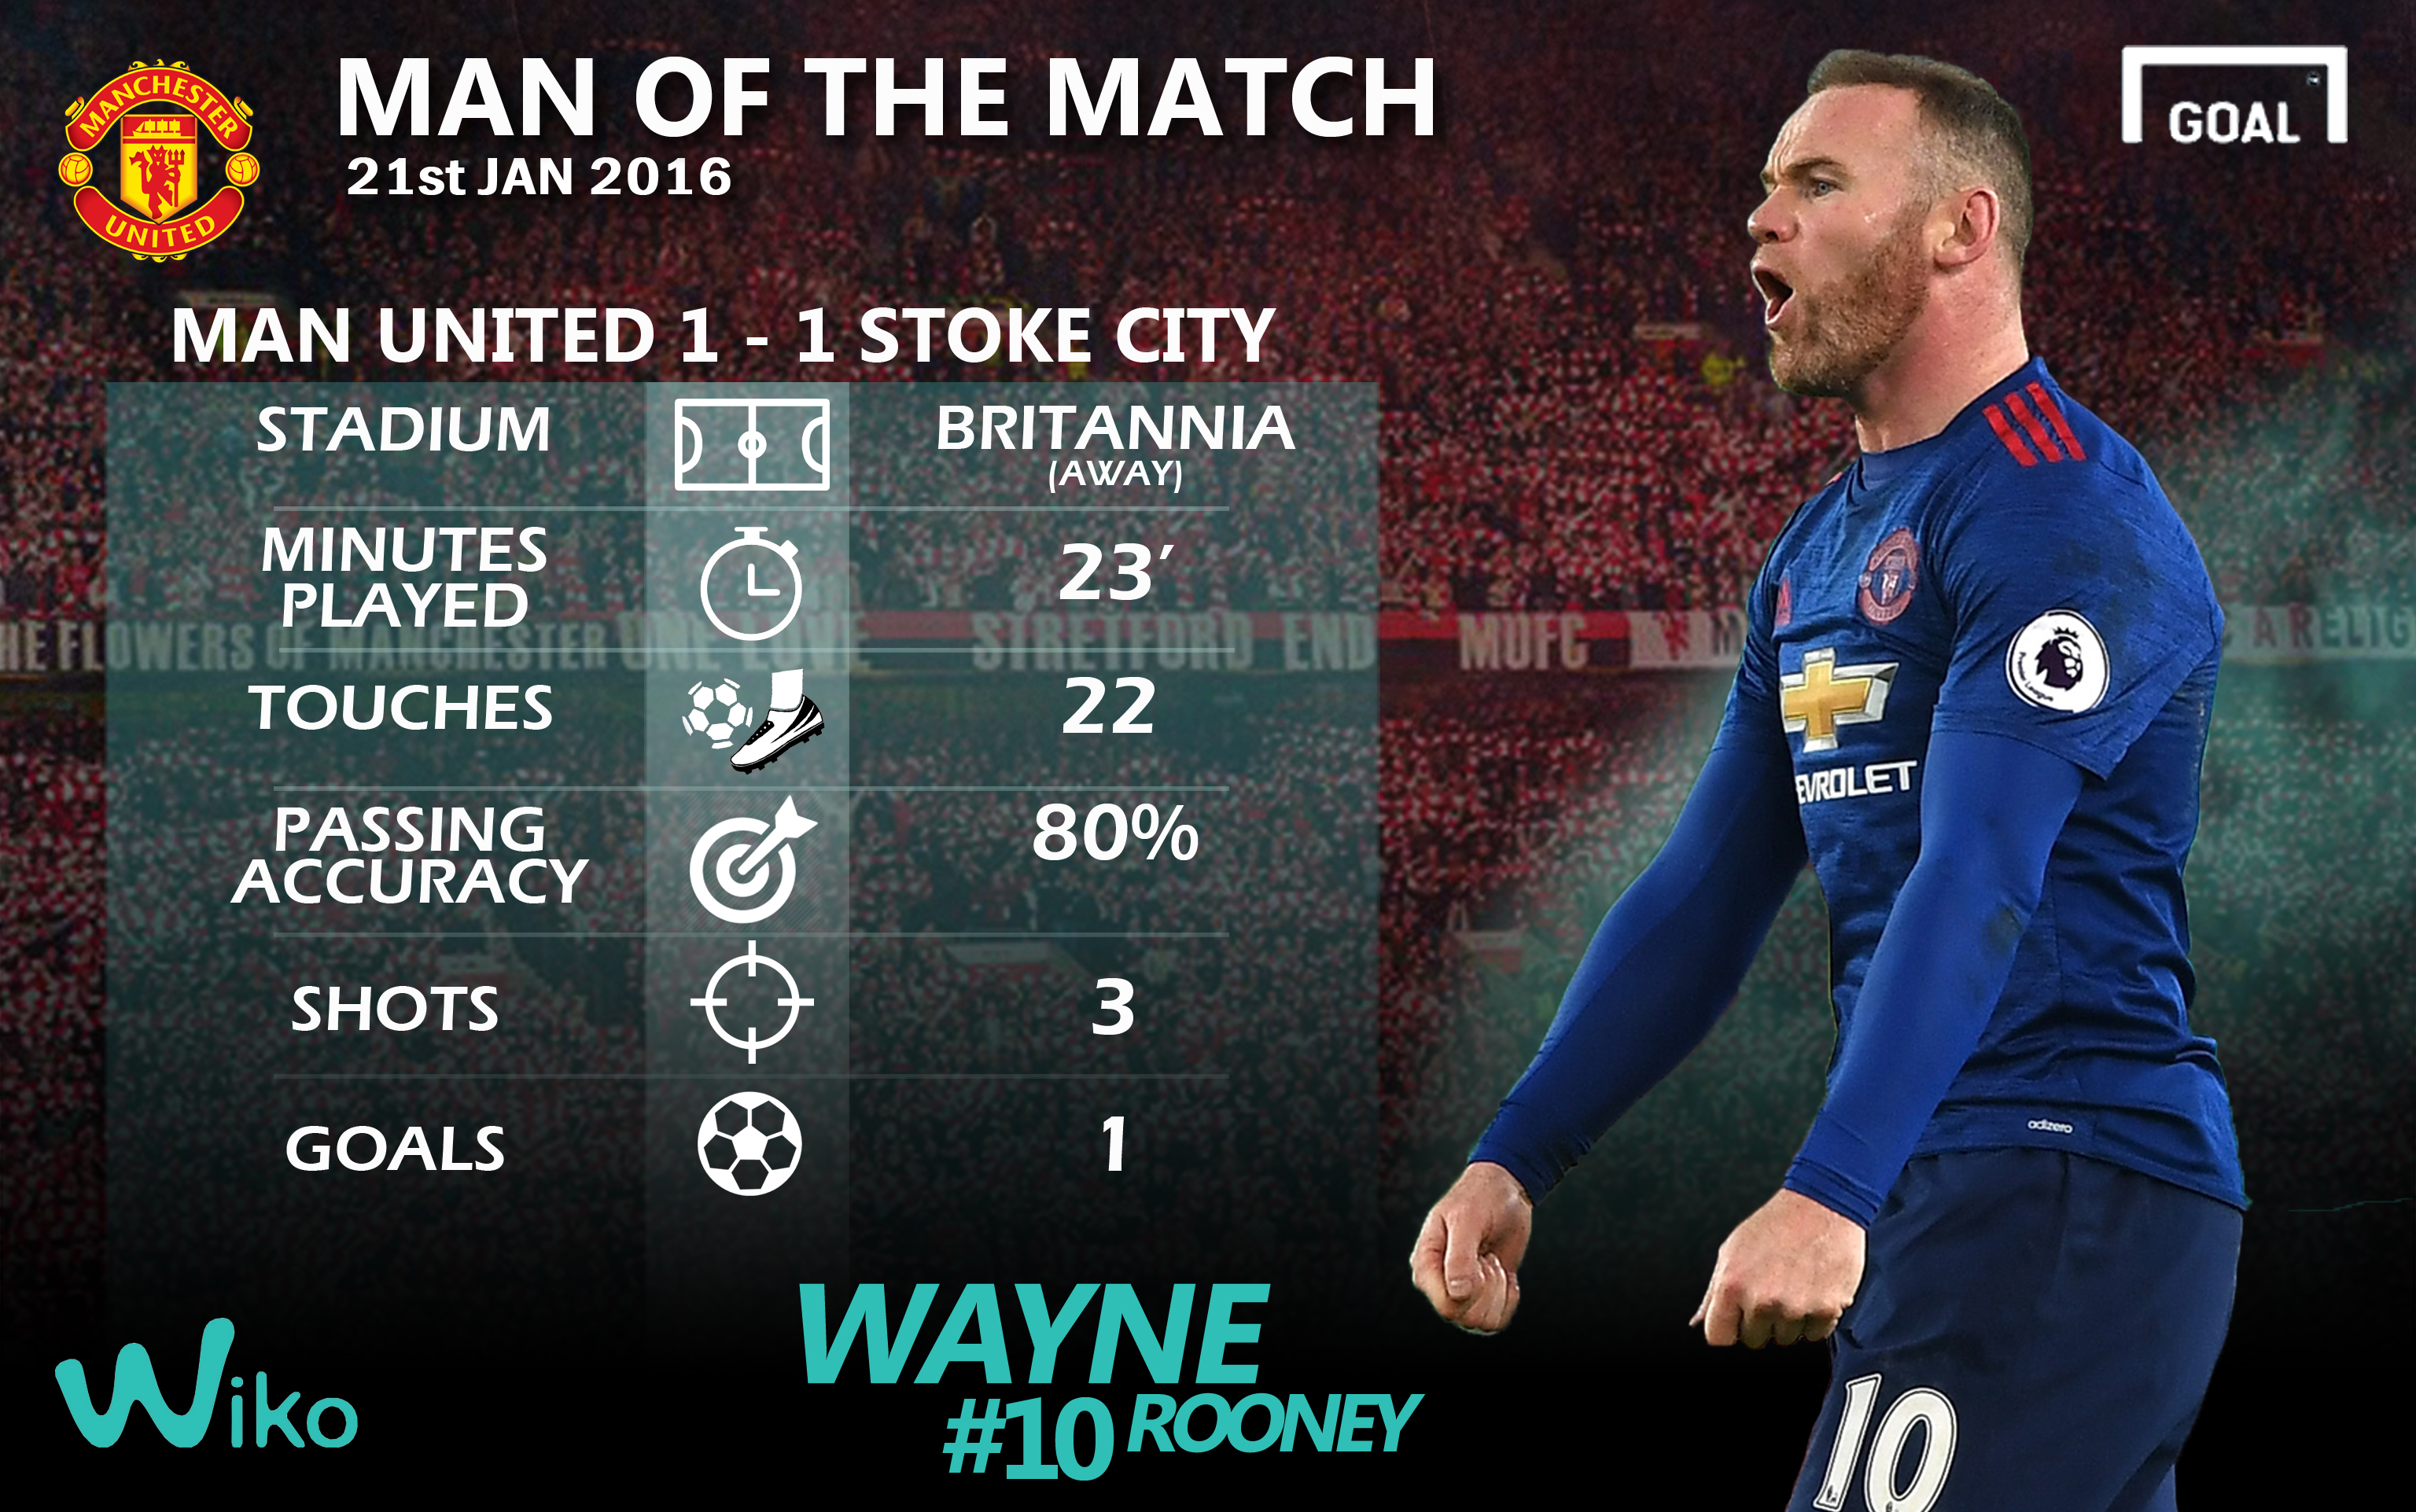 WIKO Man of the Match – Wayne Rooney